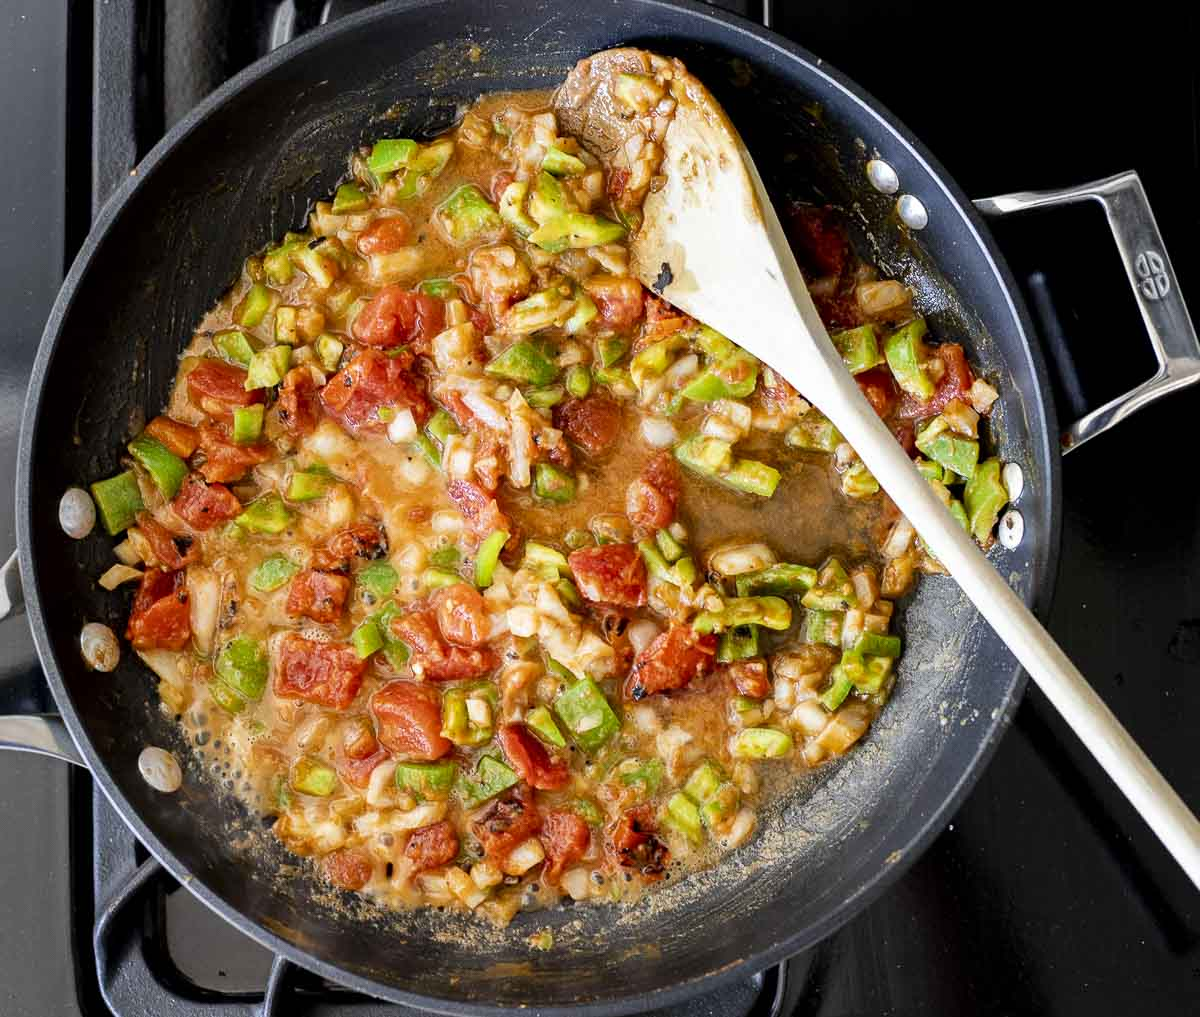 diced tomatoes, onions and green peppers in a skillet with liquid